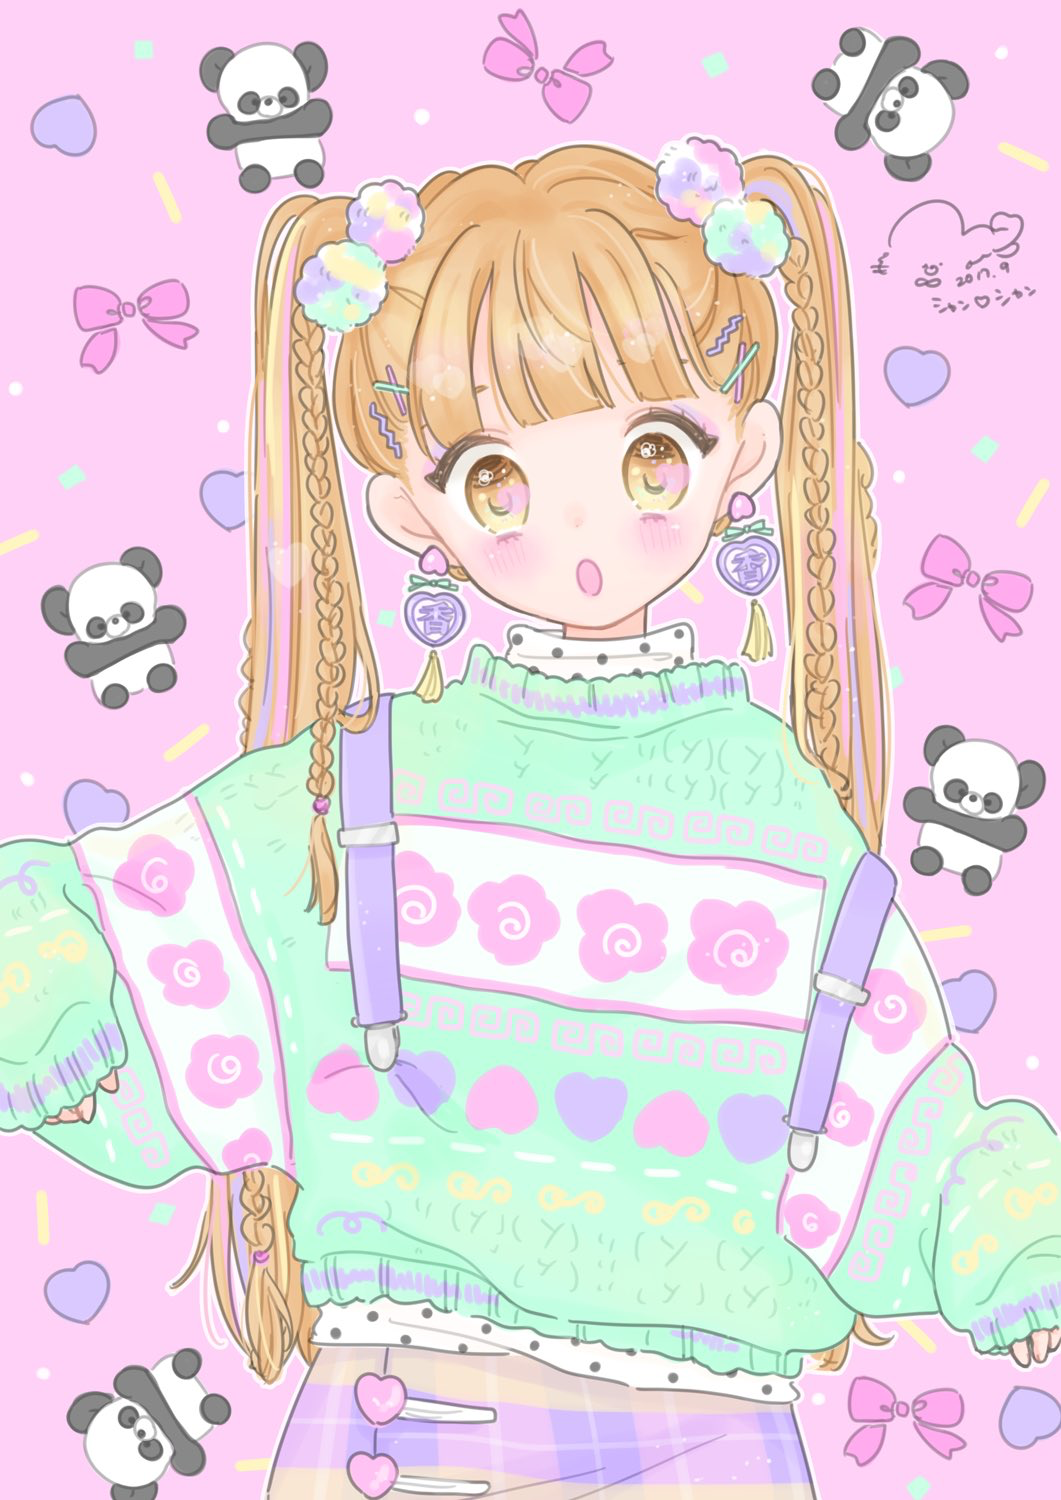 Cute Anime Girl Loli Cute Wallpapers Pin Von Mai💫 Auf Anime Girl Pastell In 2019